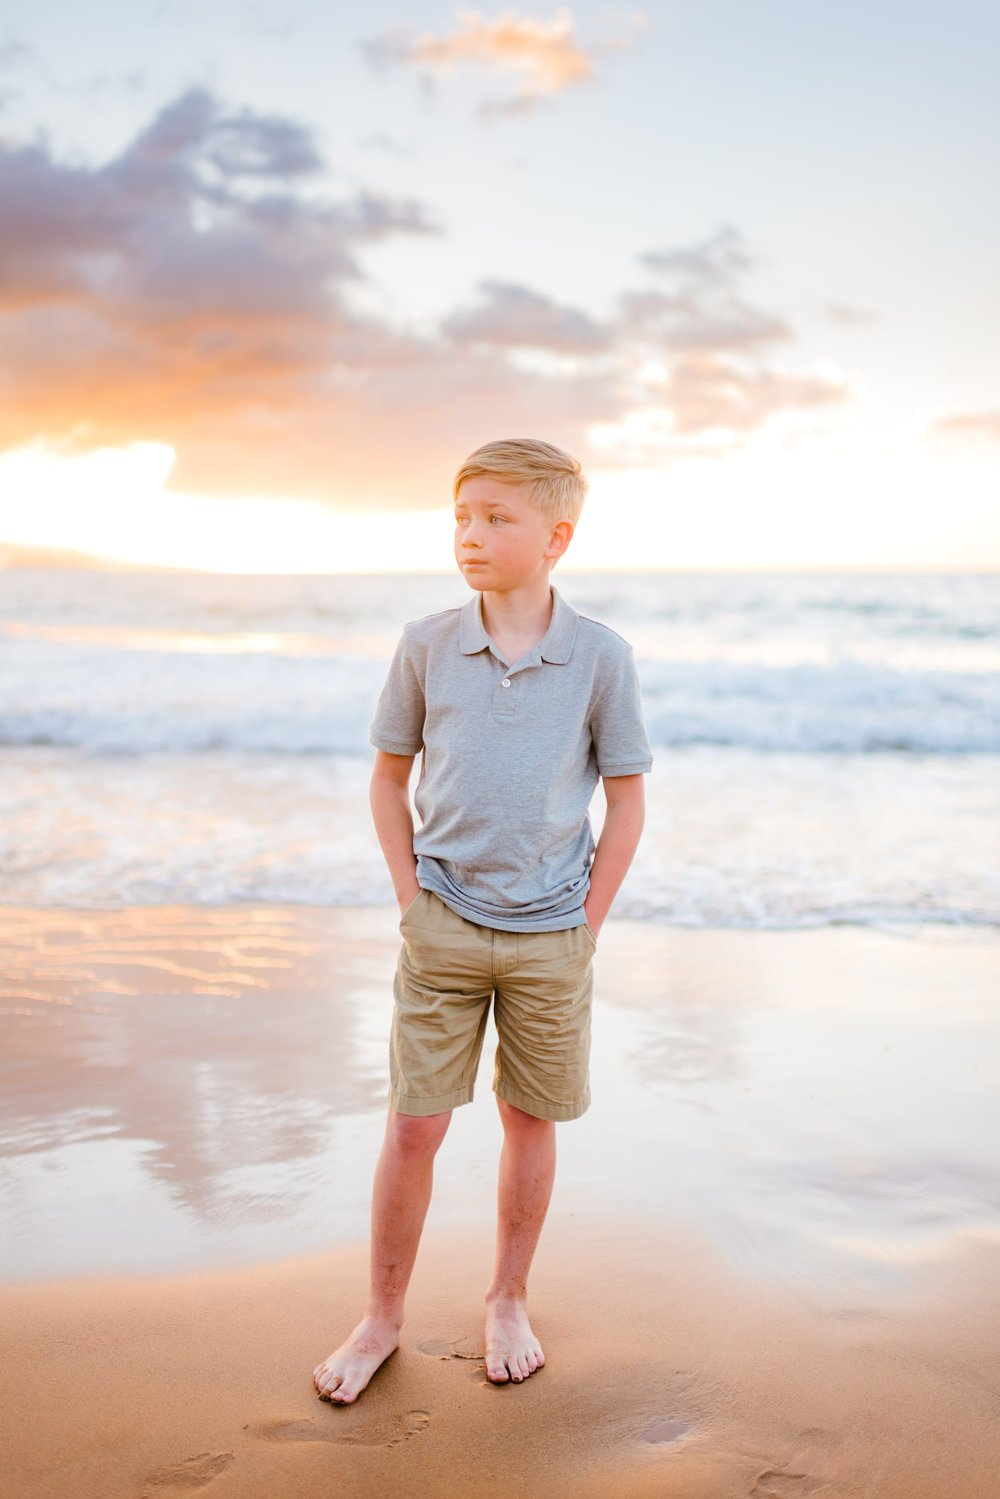 Maui-Family-Photographer-Waialea-Beach-Sunset-11.jpg